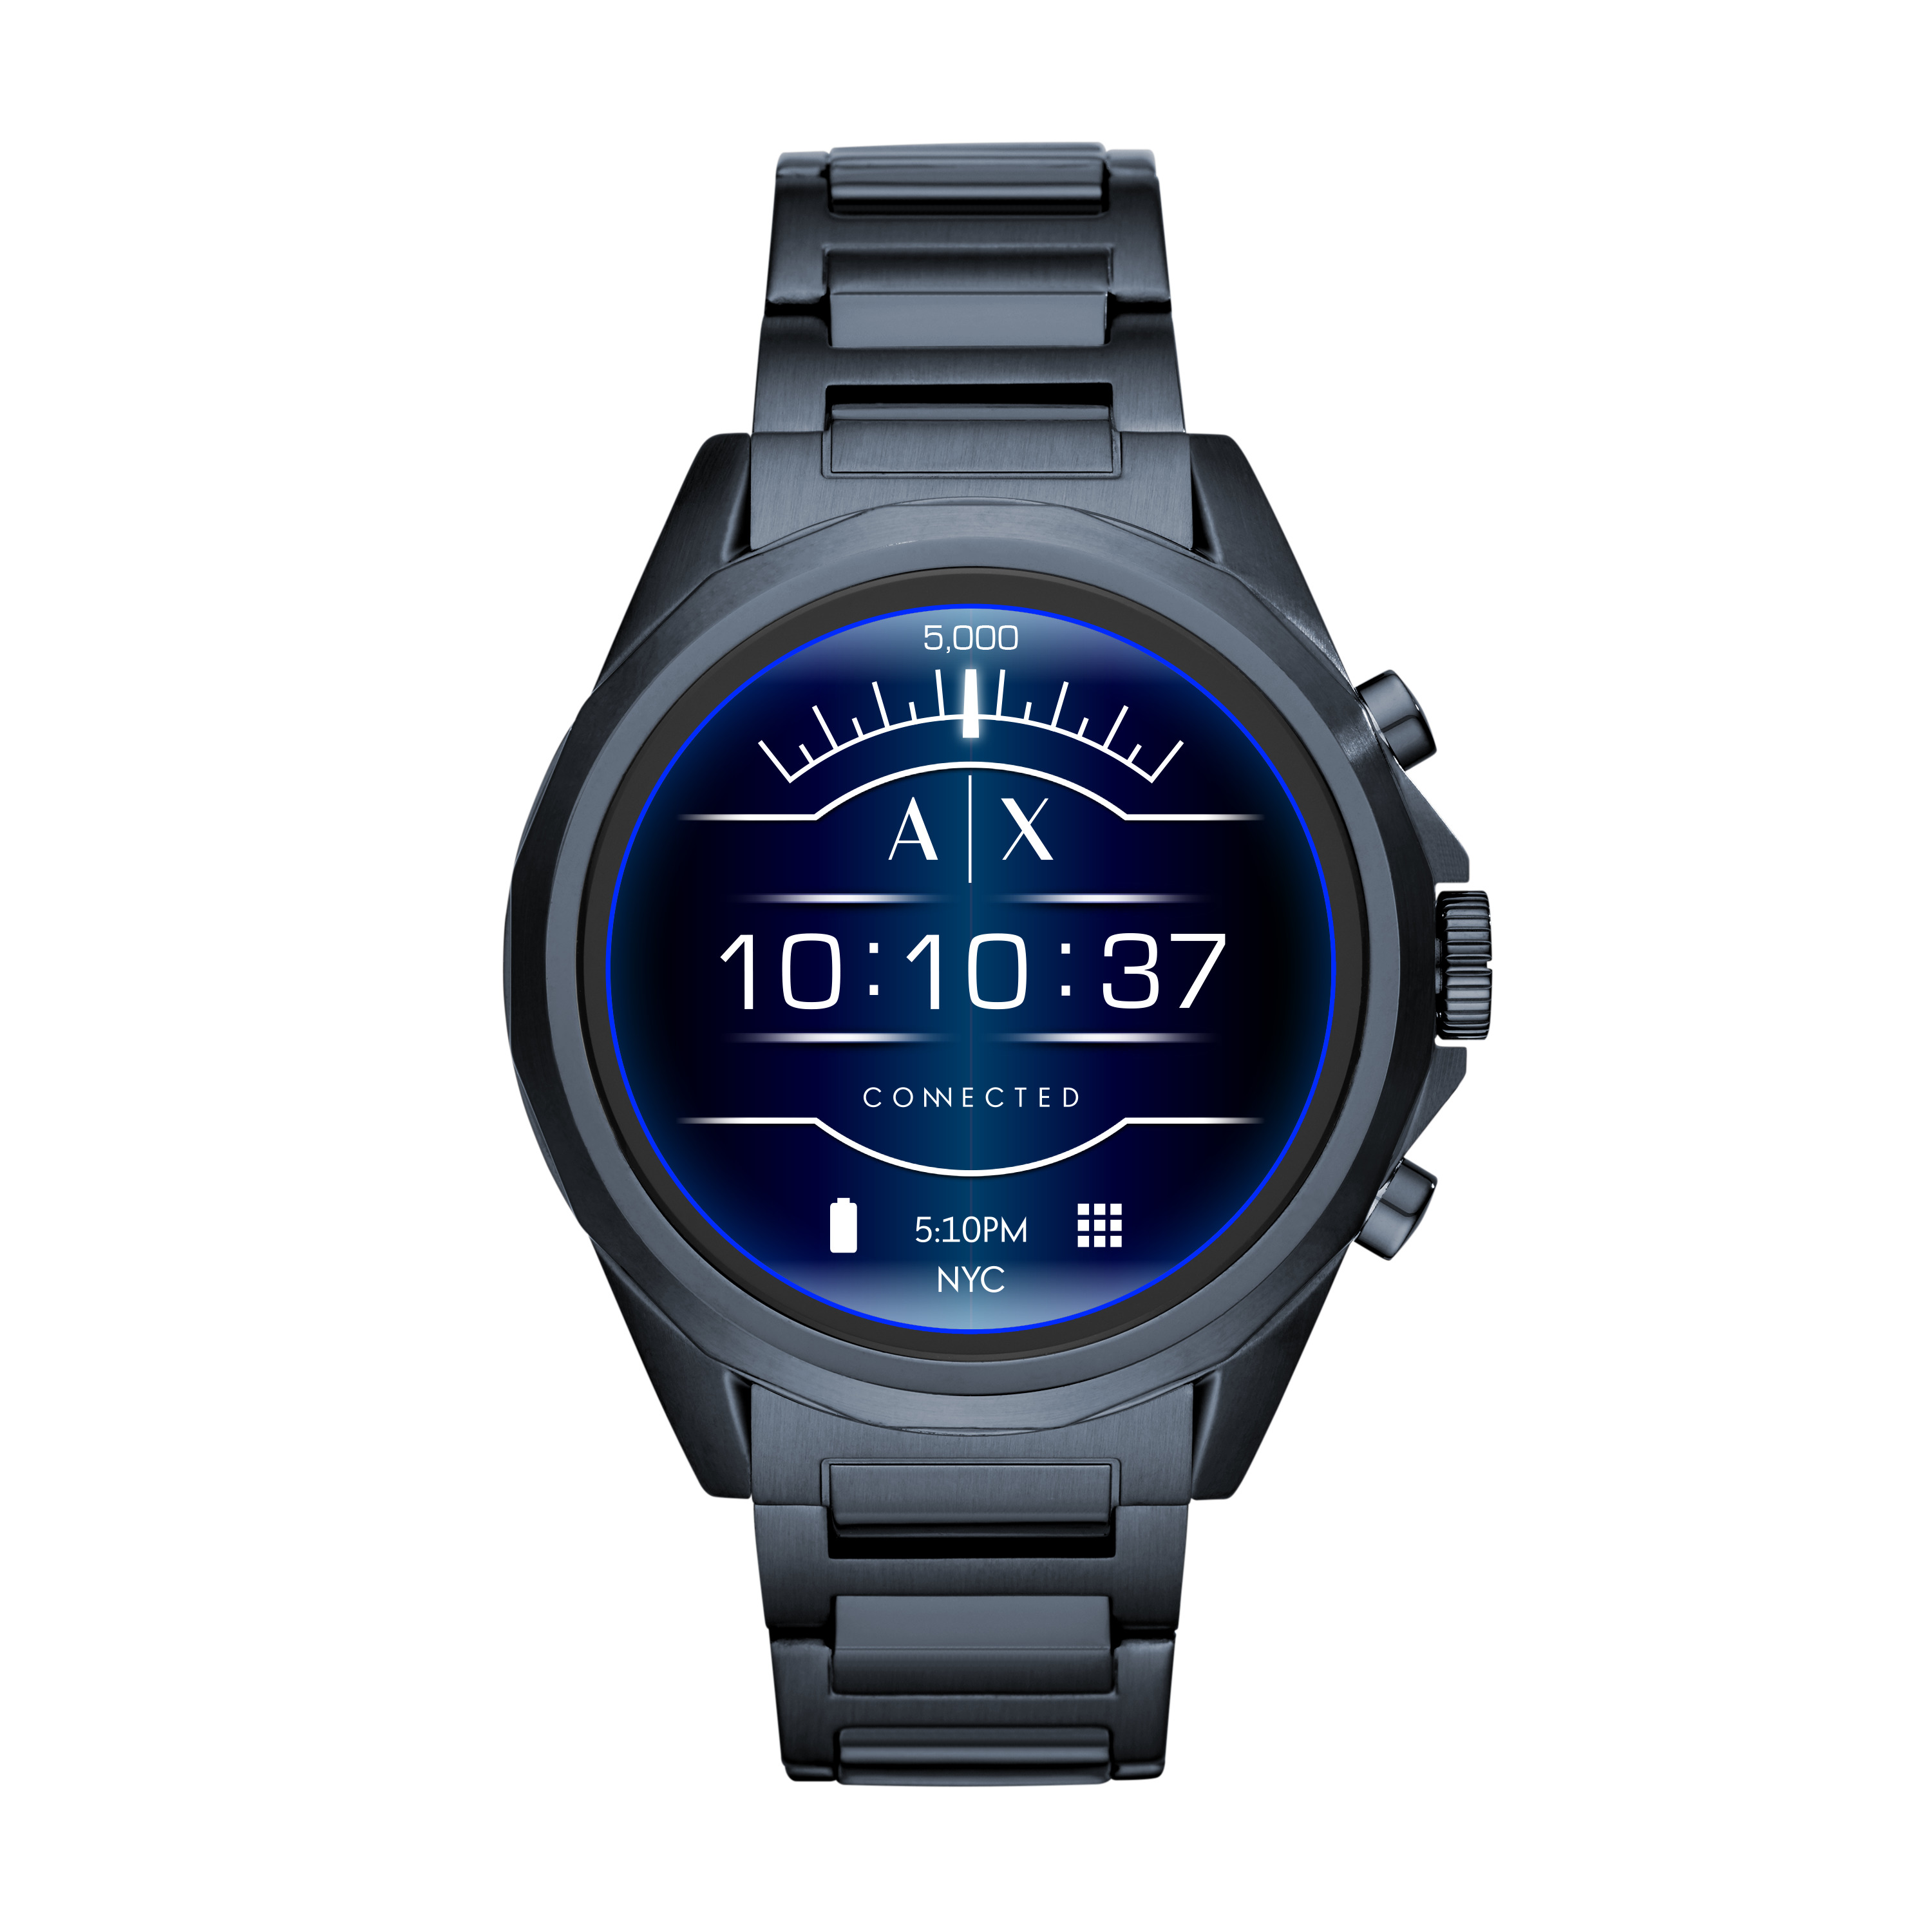 8058a78e02d Armani Exchange unveils its first ever touchscreen smartwatch ...